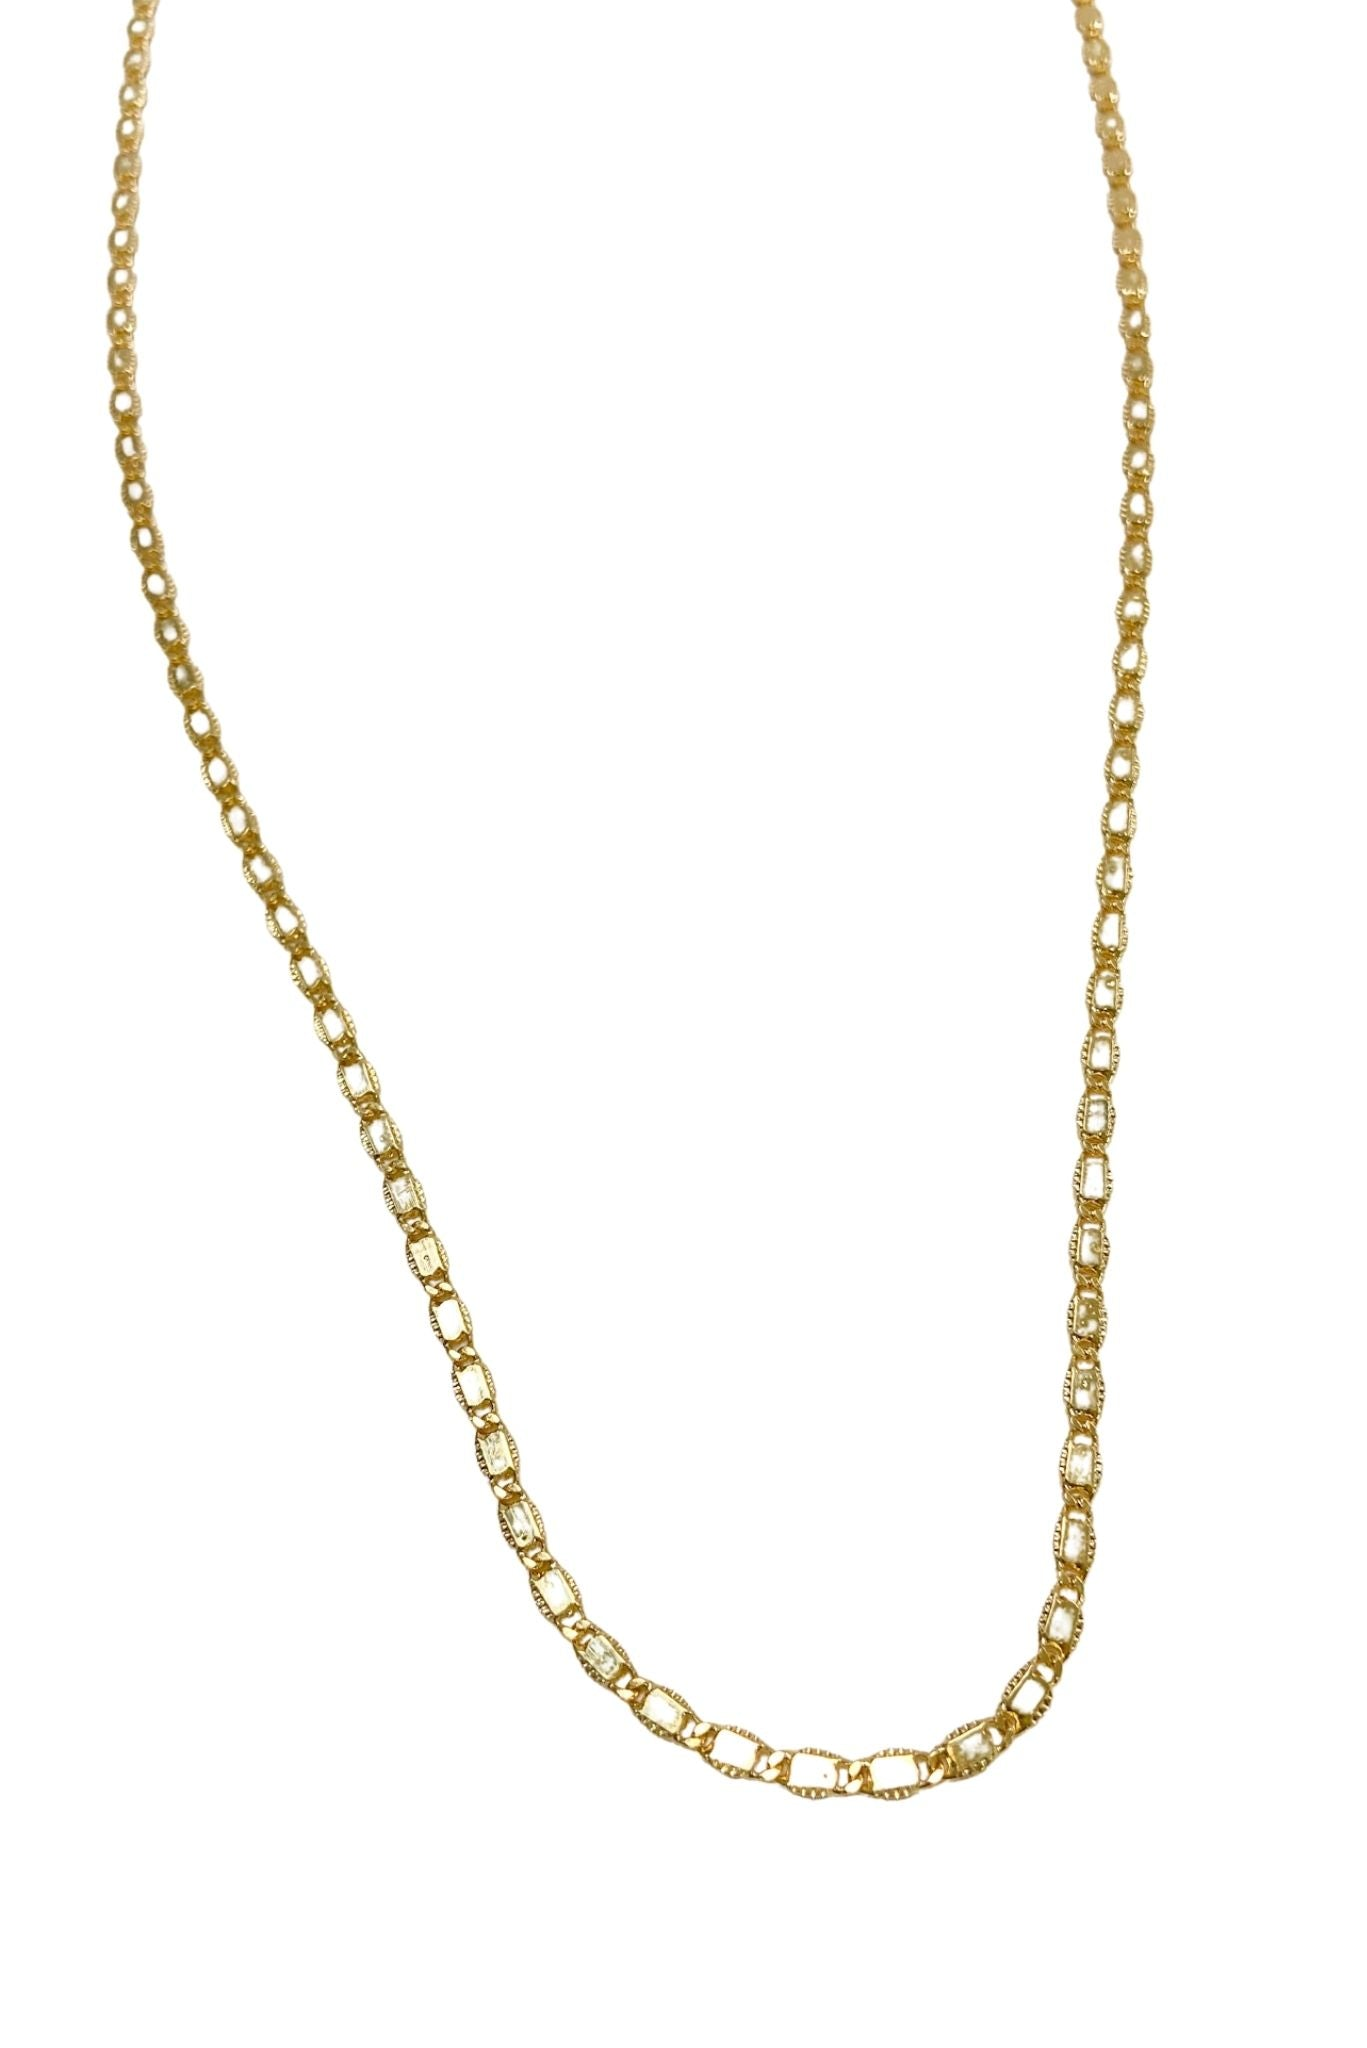 Long Thin Gold Chain Necklace